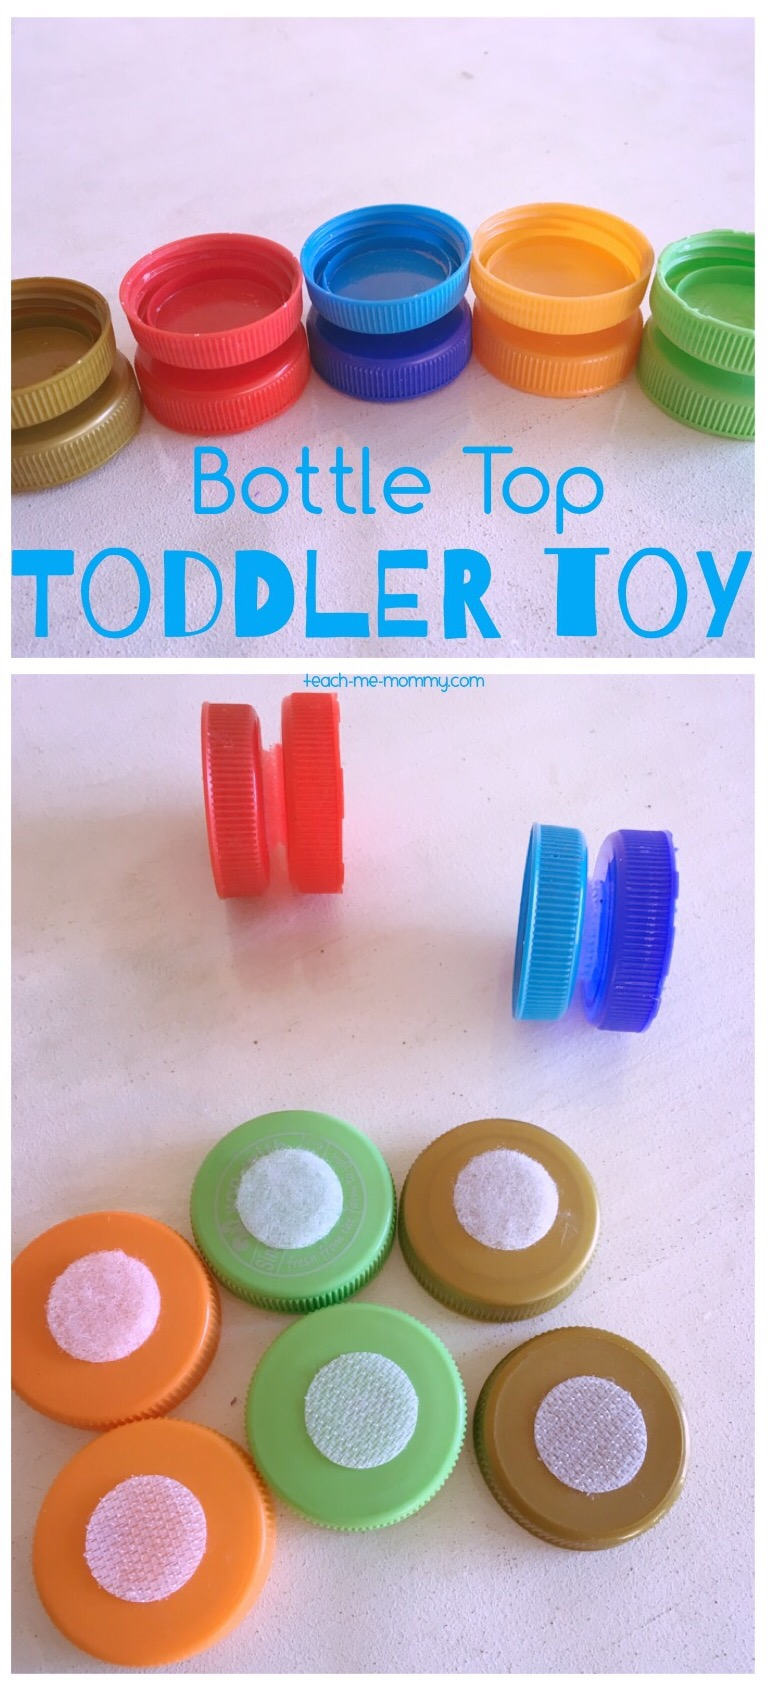 Bottle Top toddler toy